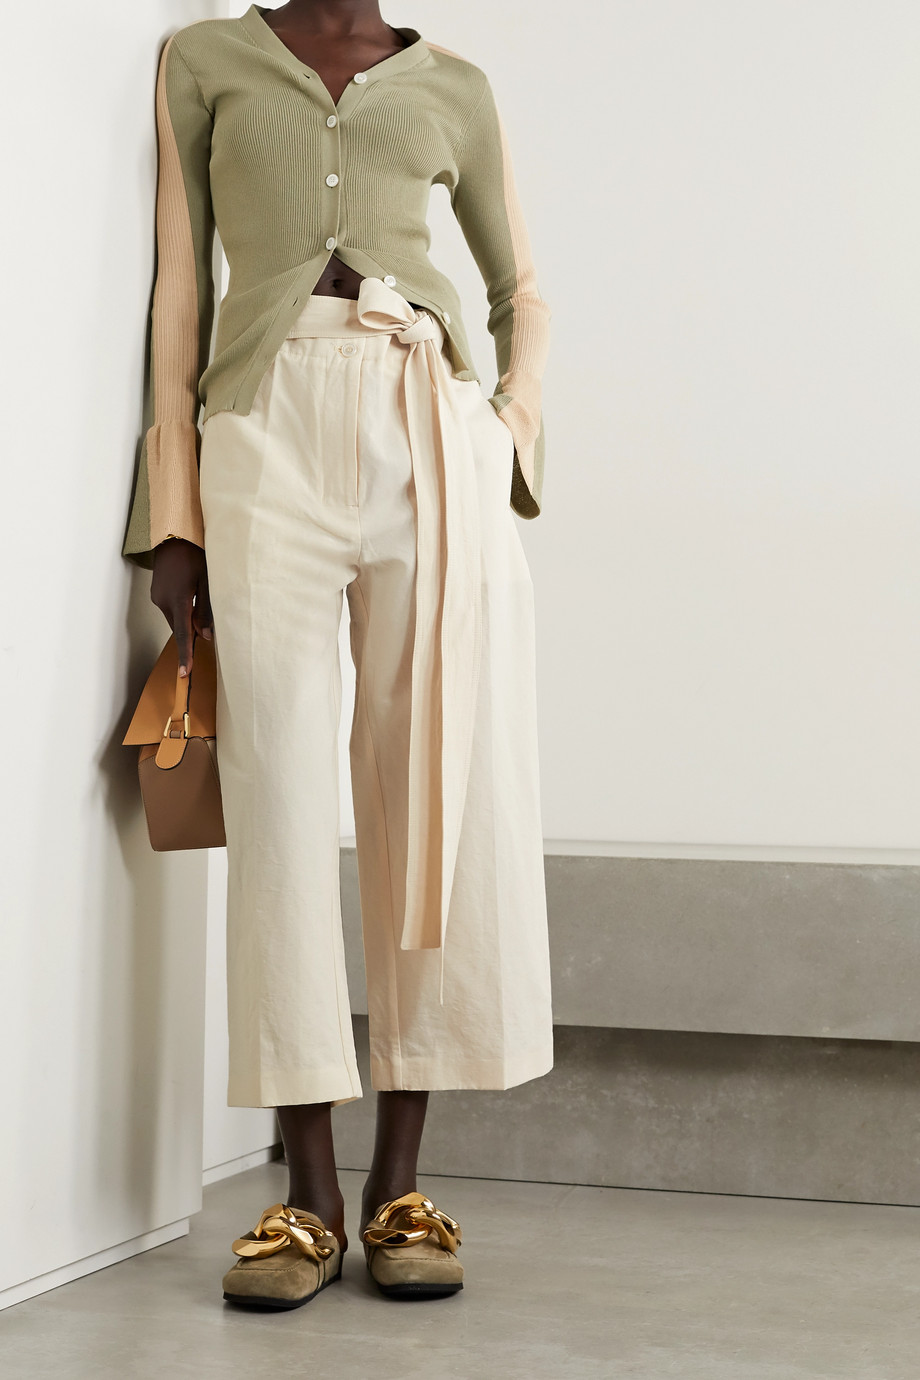 Moncler Genius + 2 Moncler 1952 cropped cotton and linen-blend wide-leg pants